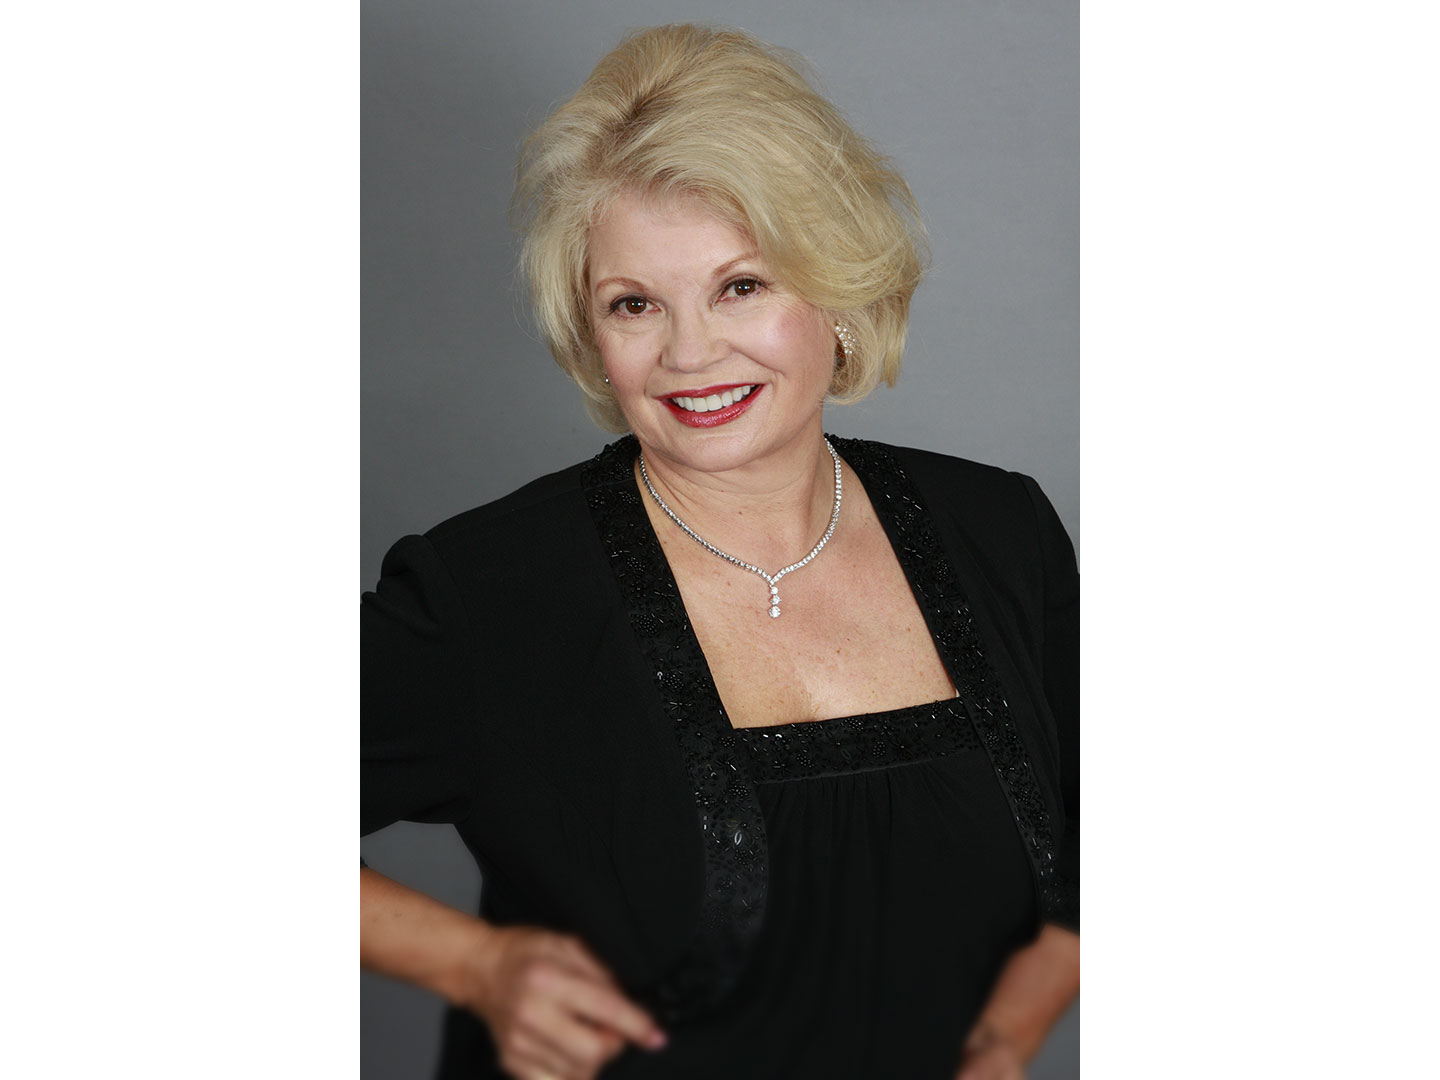 KATHY_GARVER_blackdress_nograd_w1440.jpg